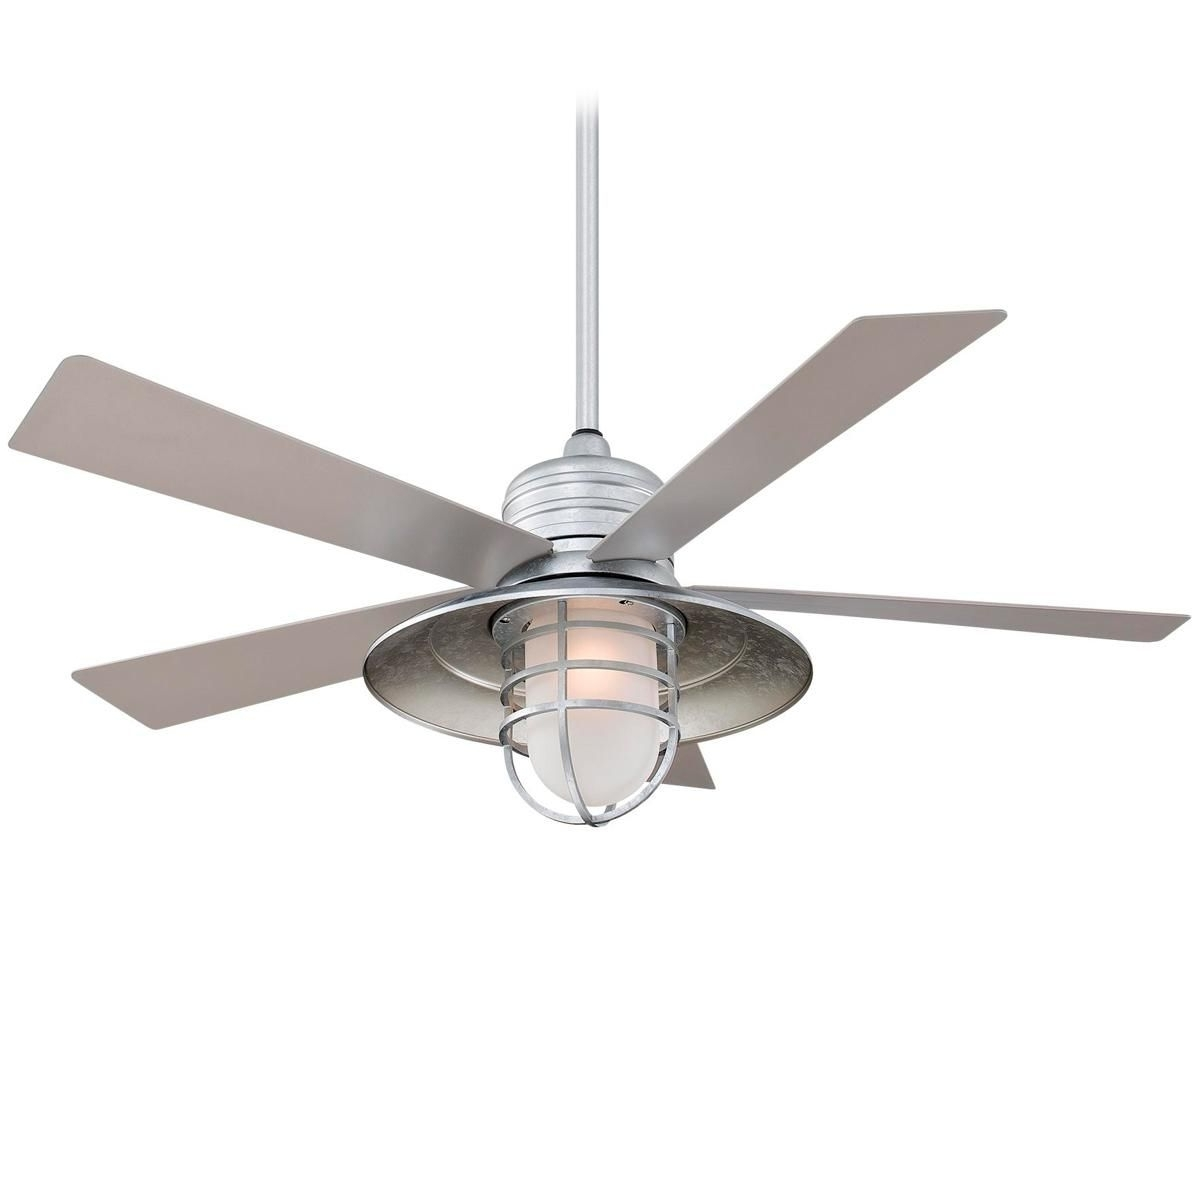 Ceiling Fan, Indoor Intended For Most Recent Nautical Outdoor Ceiling Fans (View 8 of 20)